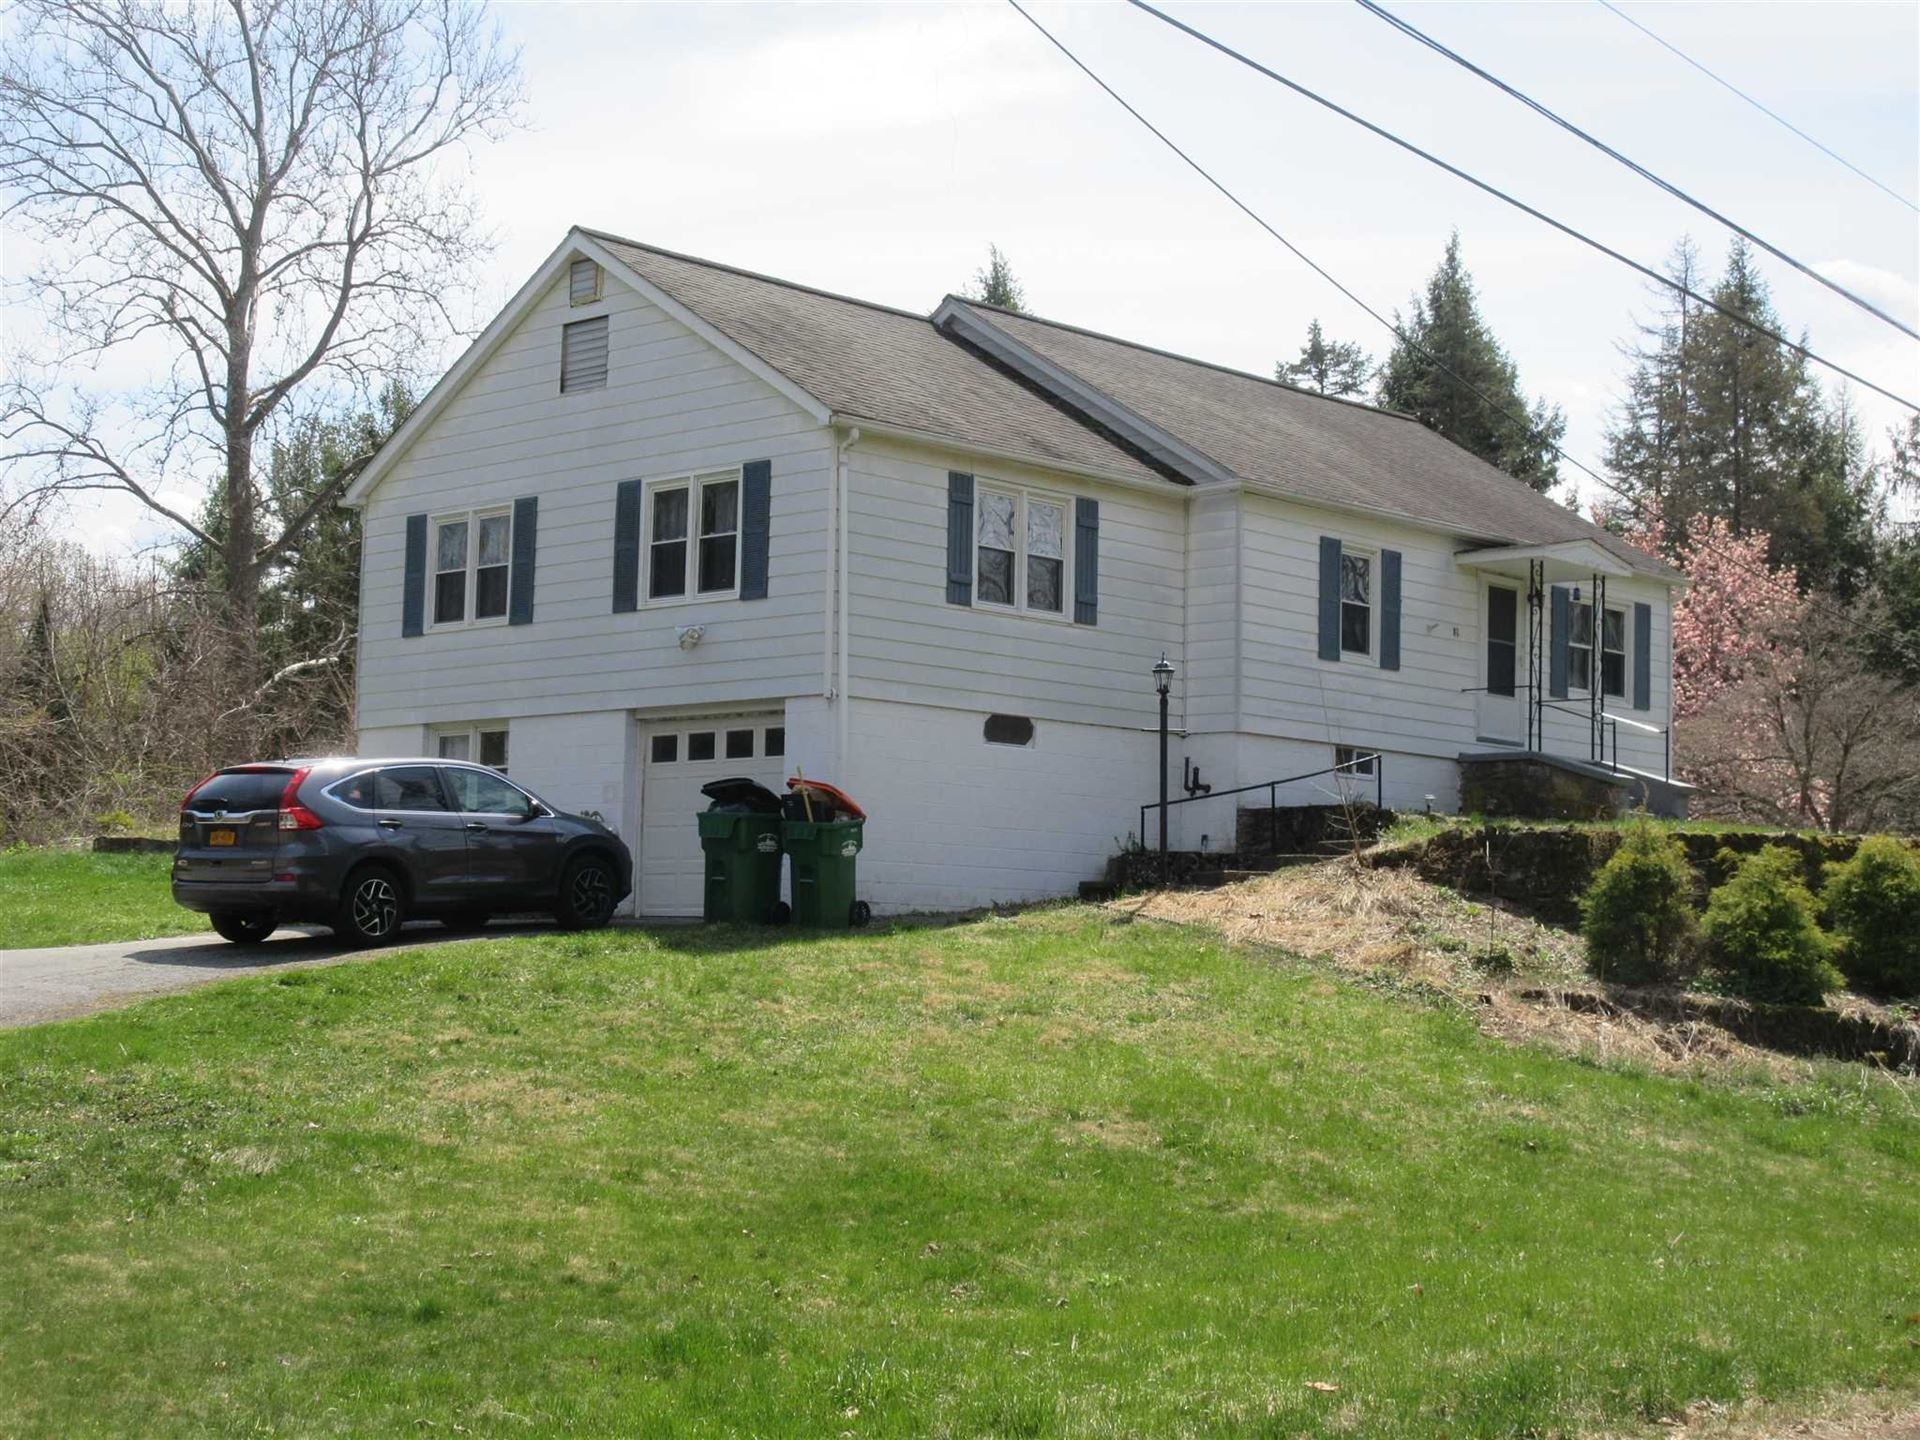 81 MOUNTAINVIEW RD, Fishkill, NY 12524 - #: 399717